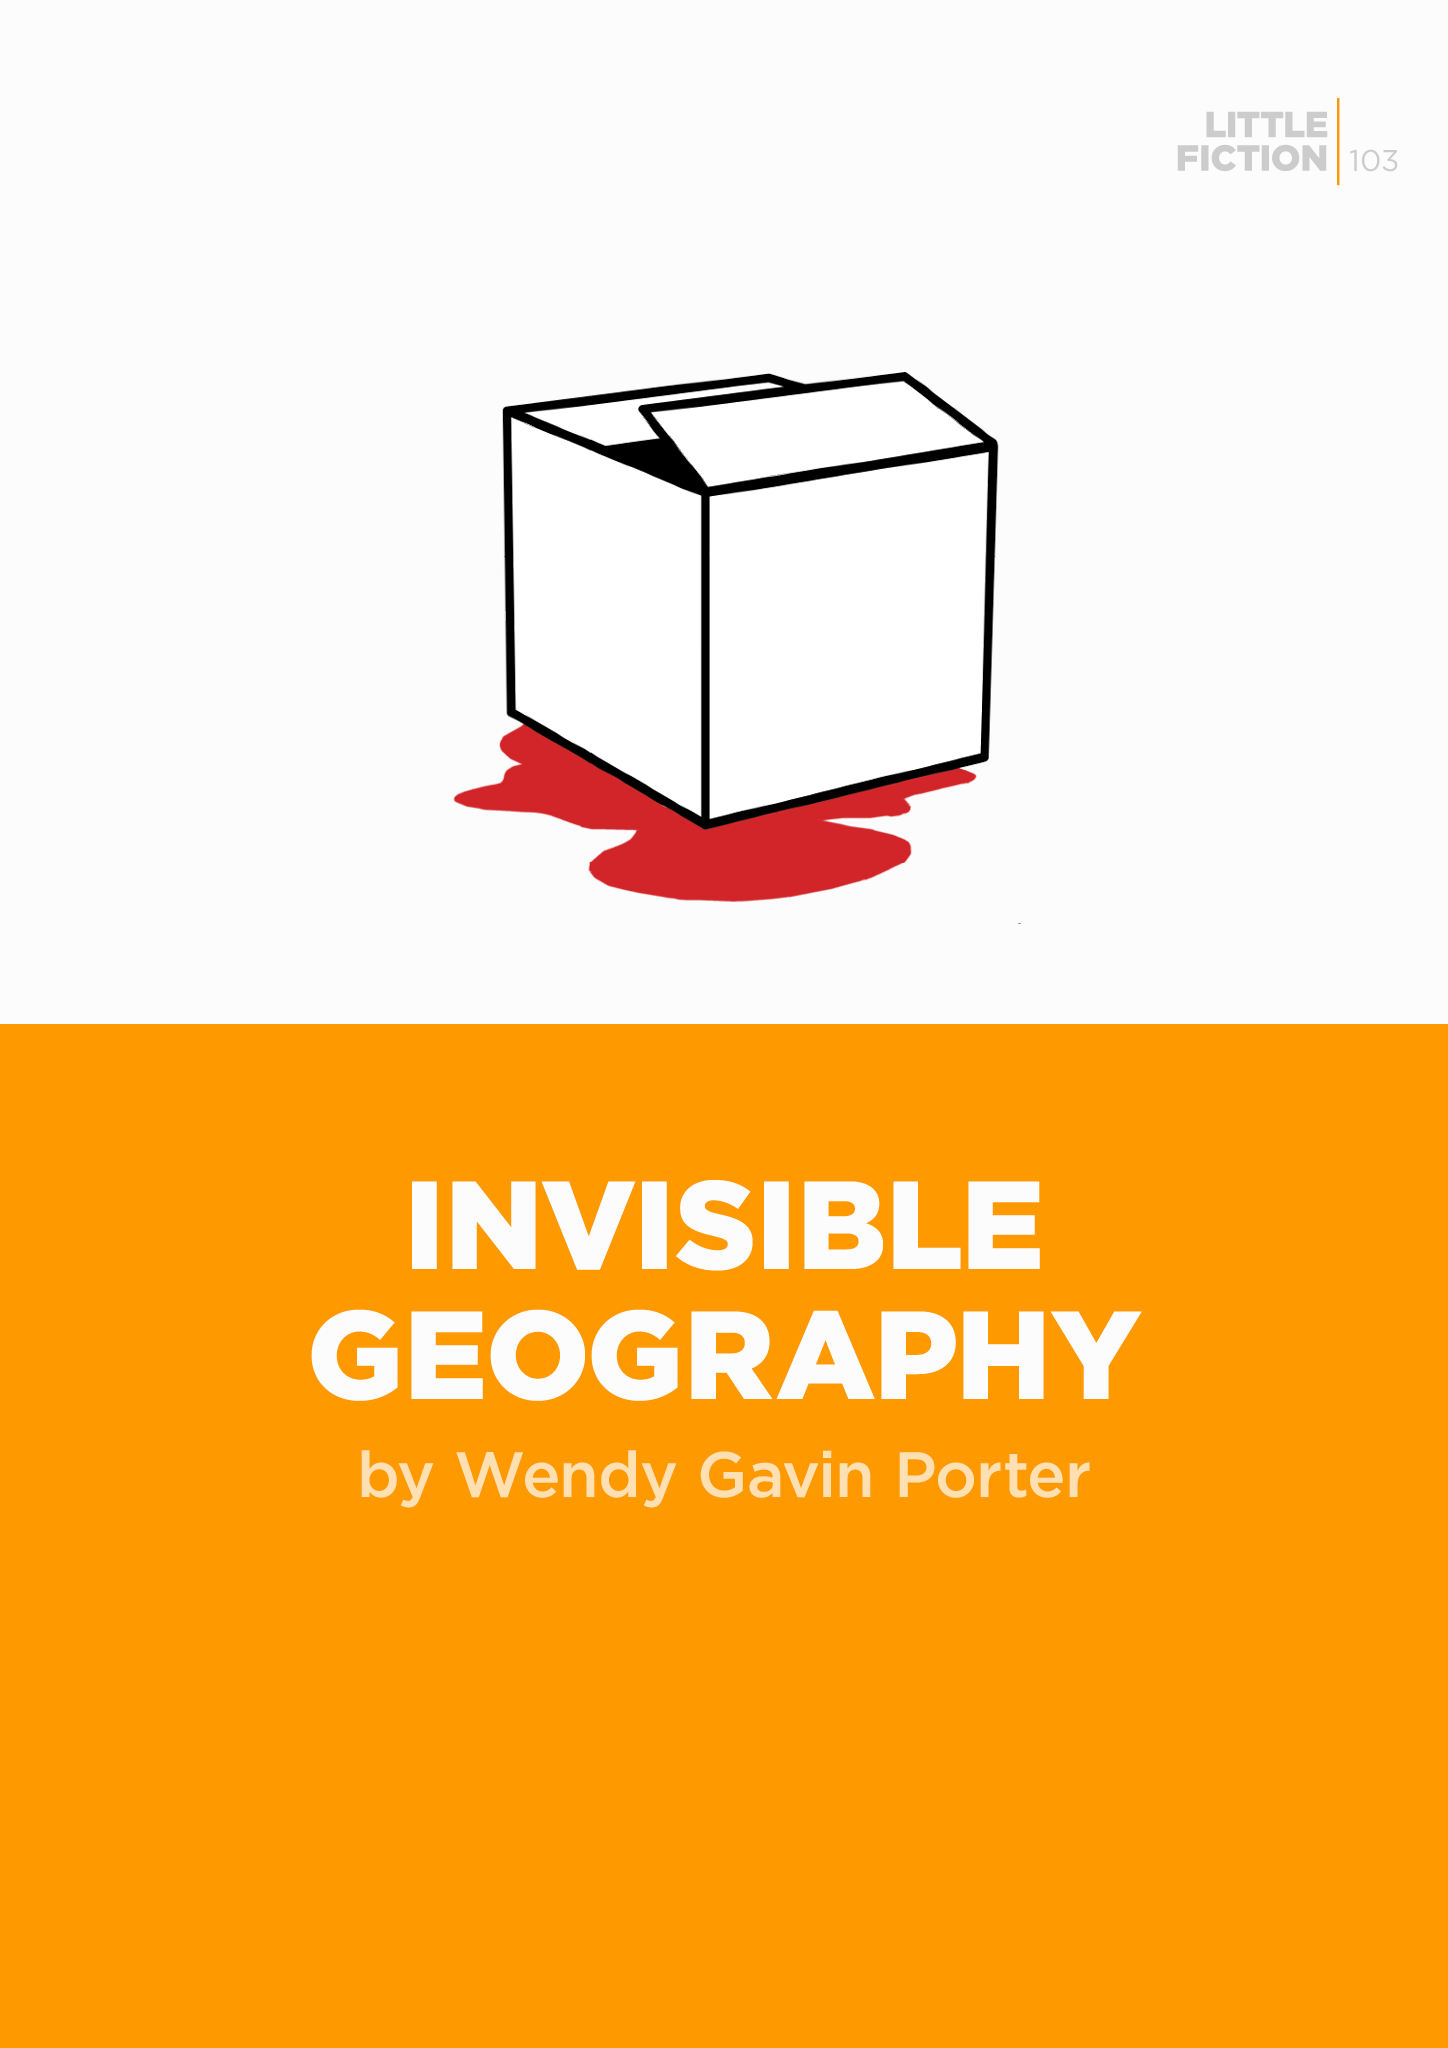 Invisible Geography - Little Fiction   Big Truths - Medium